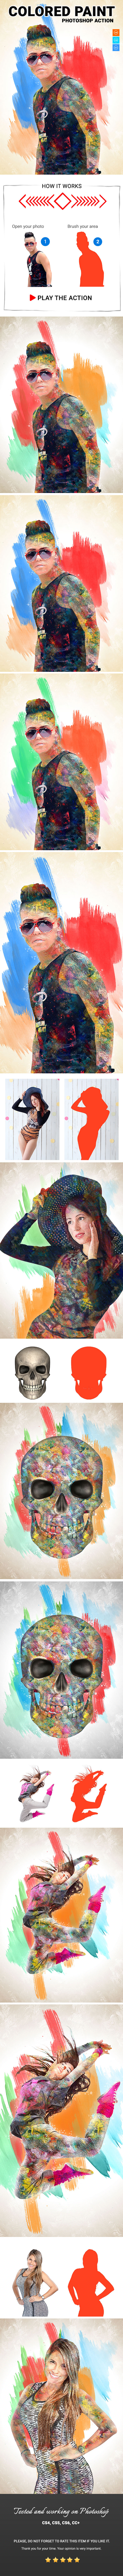 Colored Paint Photoshop Action - Photo Effects Actions